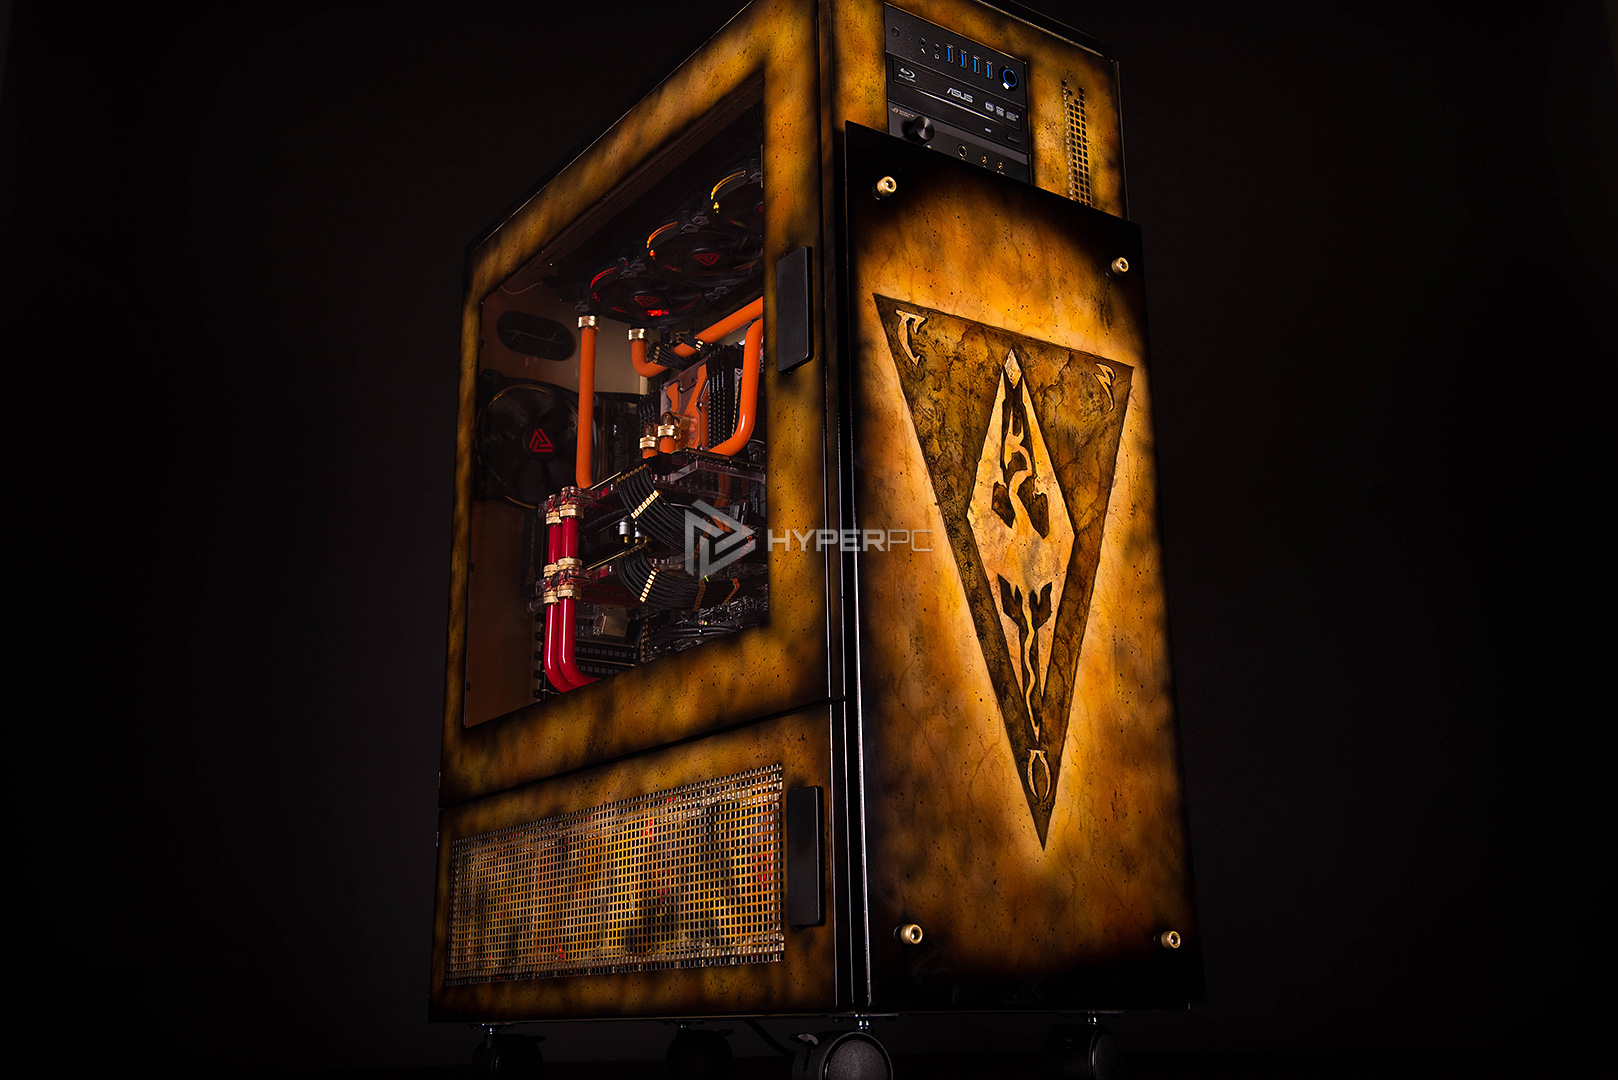 thermaltake core wp100 morrowind photo 002